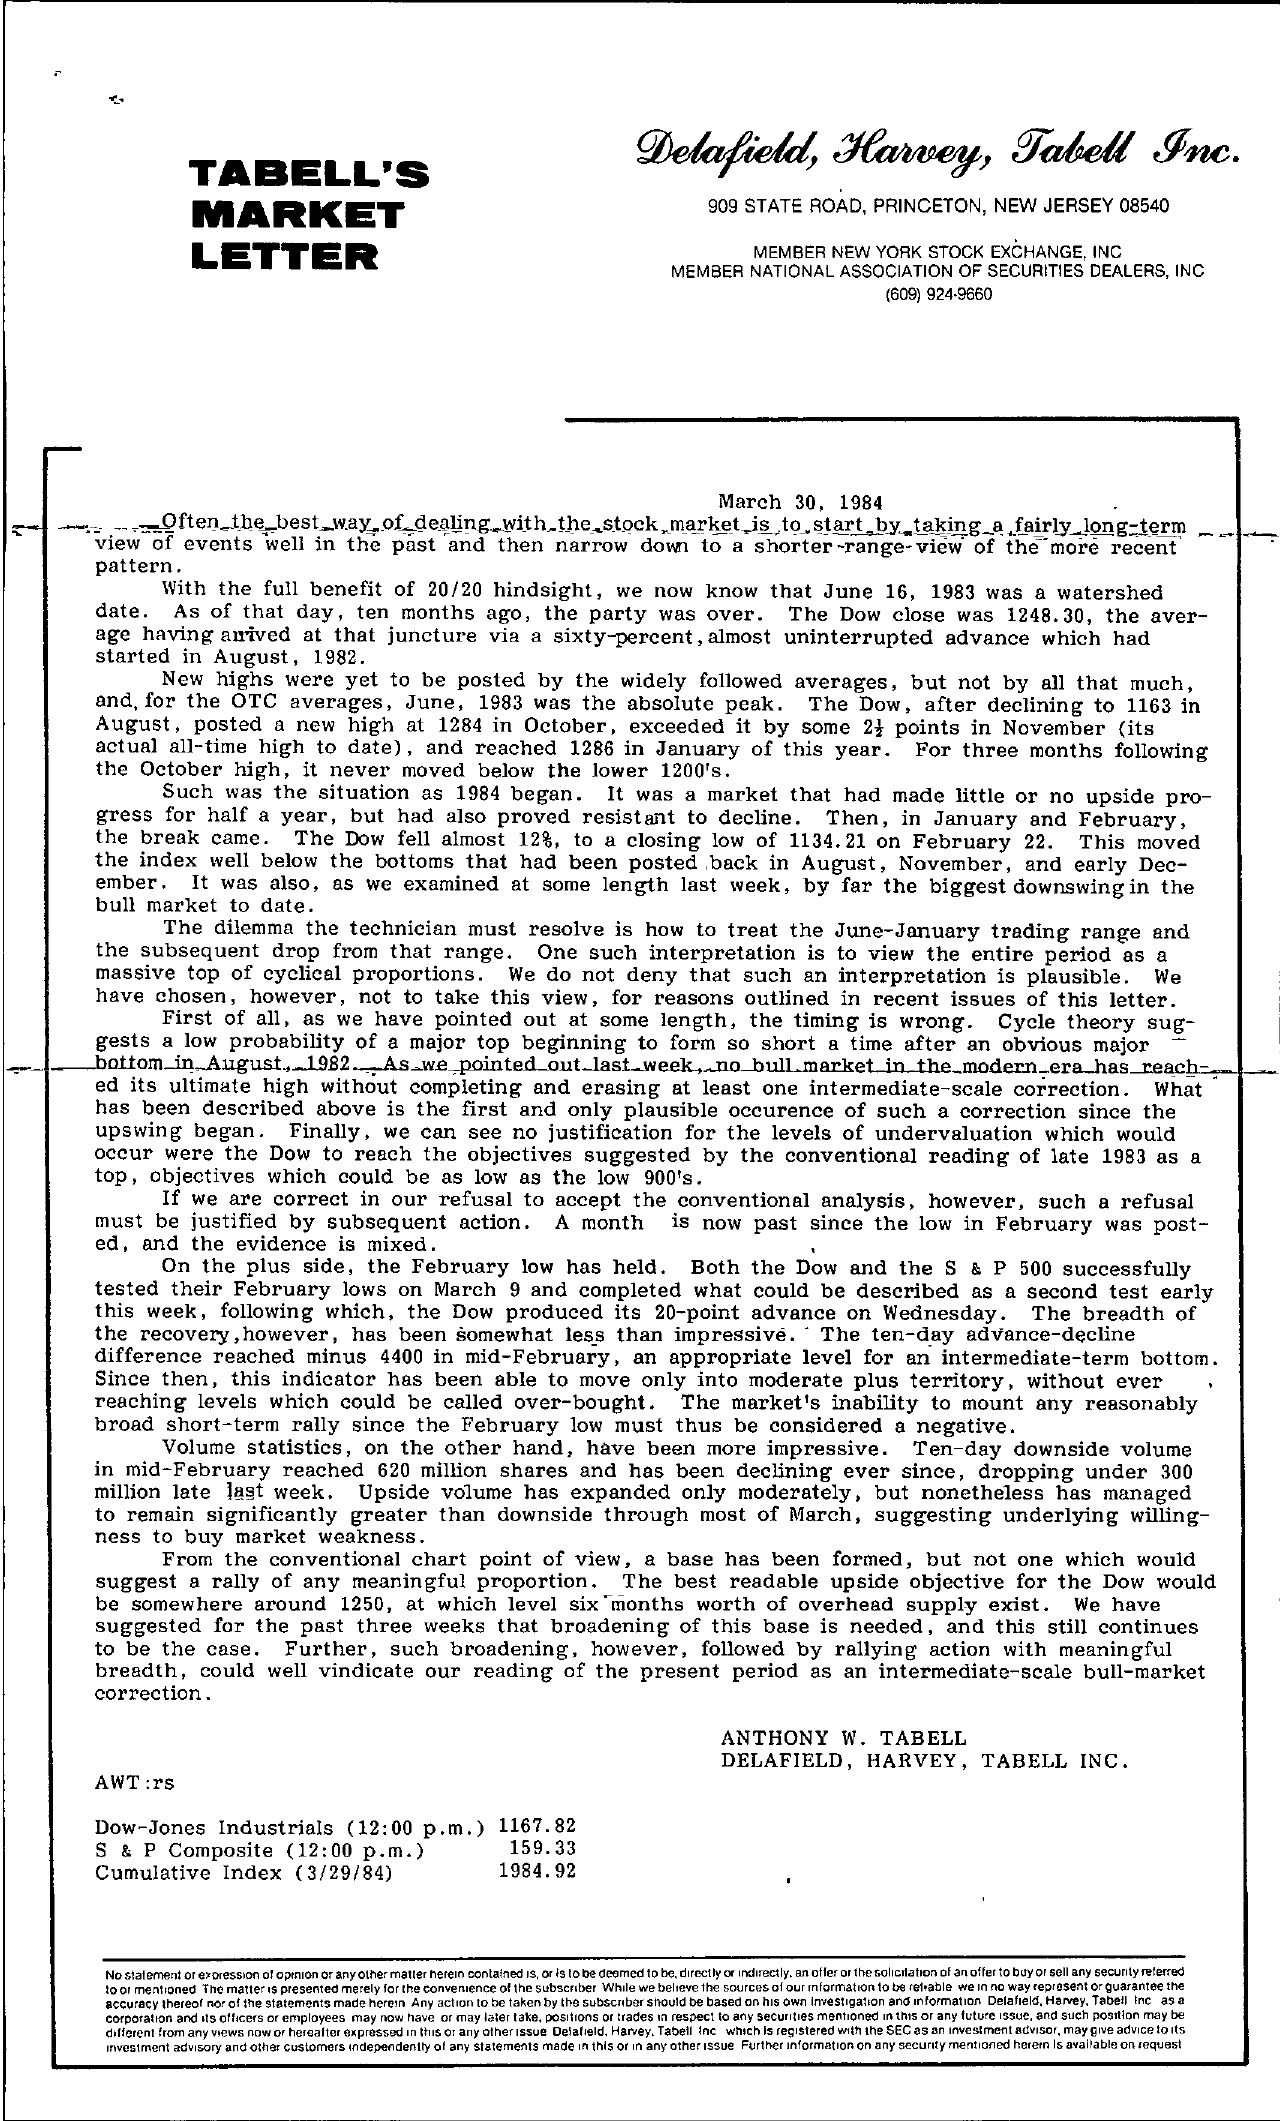 Tabell's Market Letter - March 30, 1984